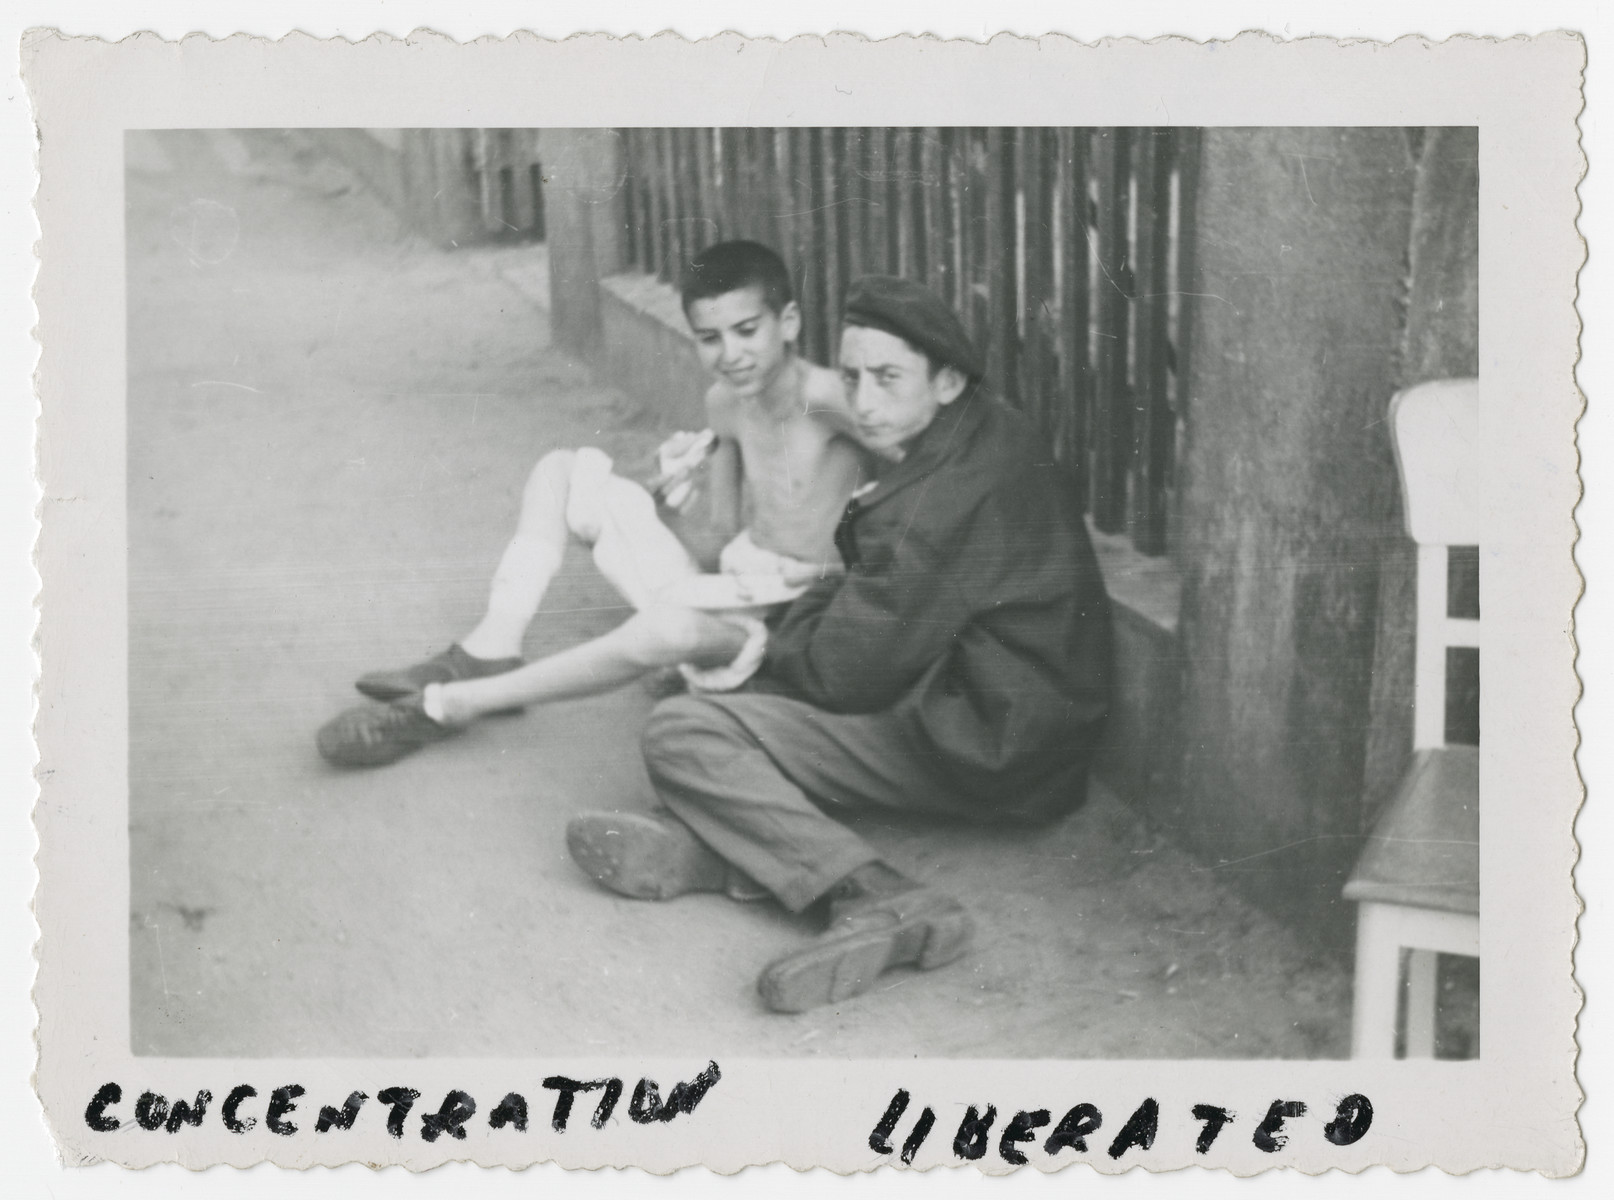 Two young prisoners from the Woebbelin concentration camp lean against a fence after liberation.    The one farthest from camera was interned at age 15 and was liberated at age 18.  He weighed 60 lbs when liberated.